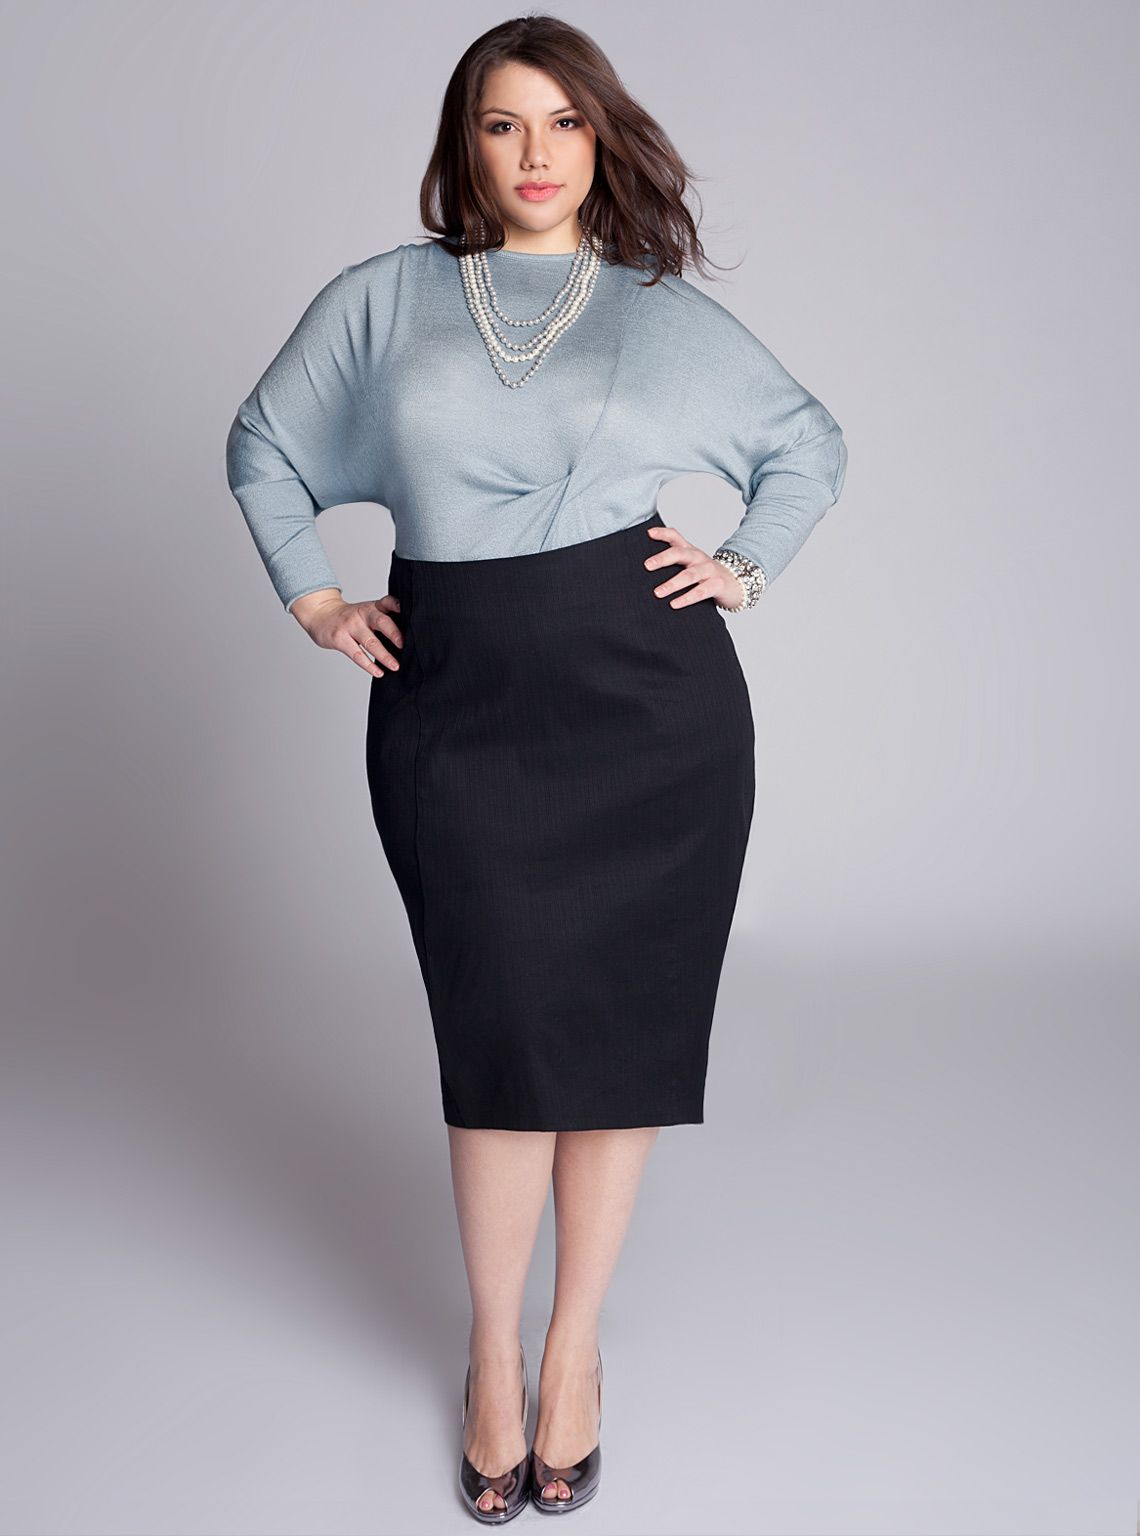 Feminine Career Clothes Fashion Pluss Career Fashion For Women Pinterest Pencil Skirts